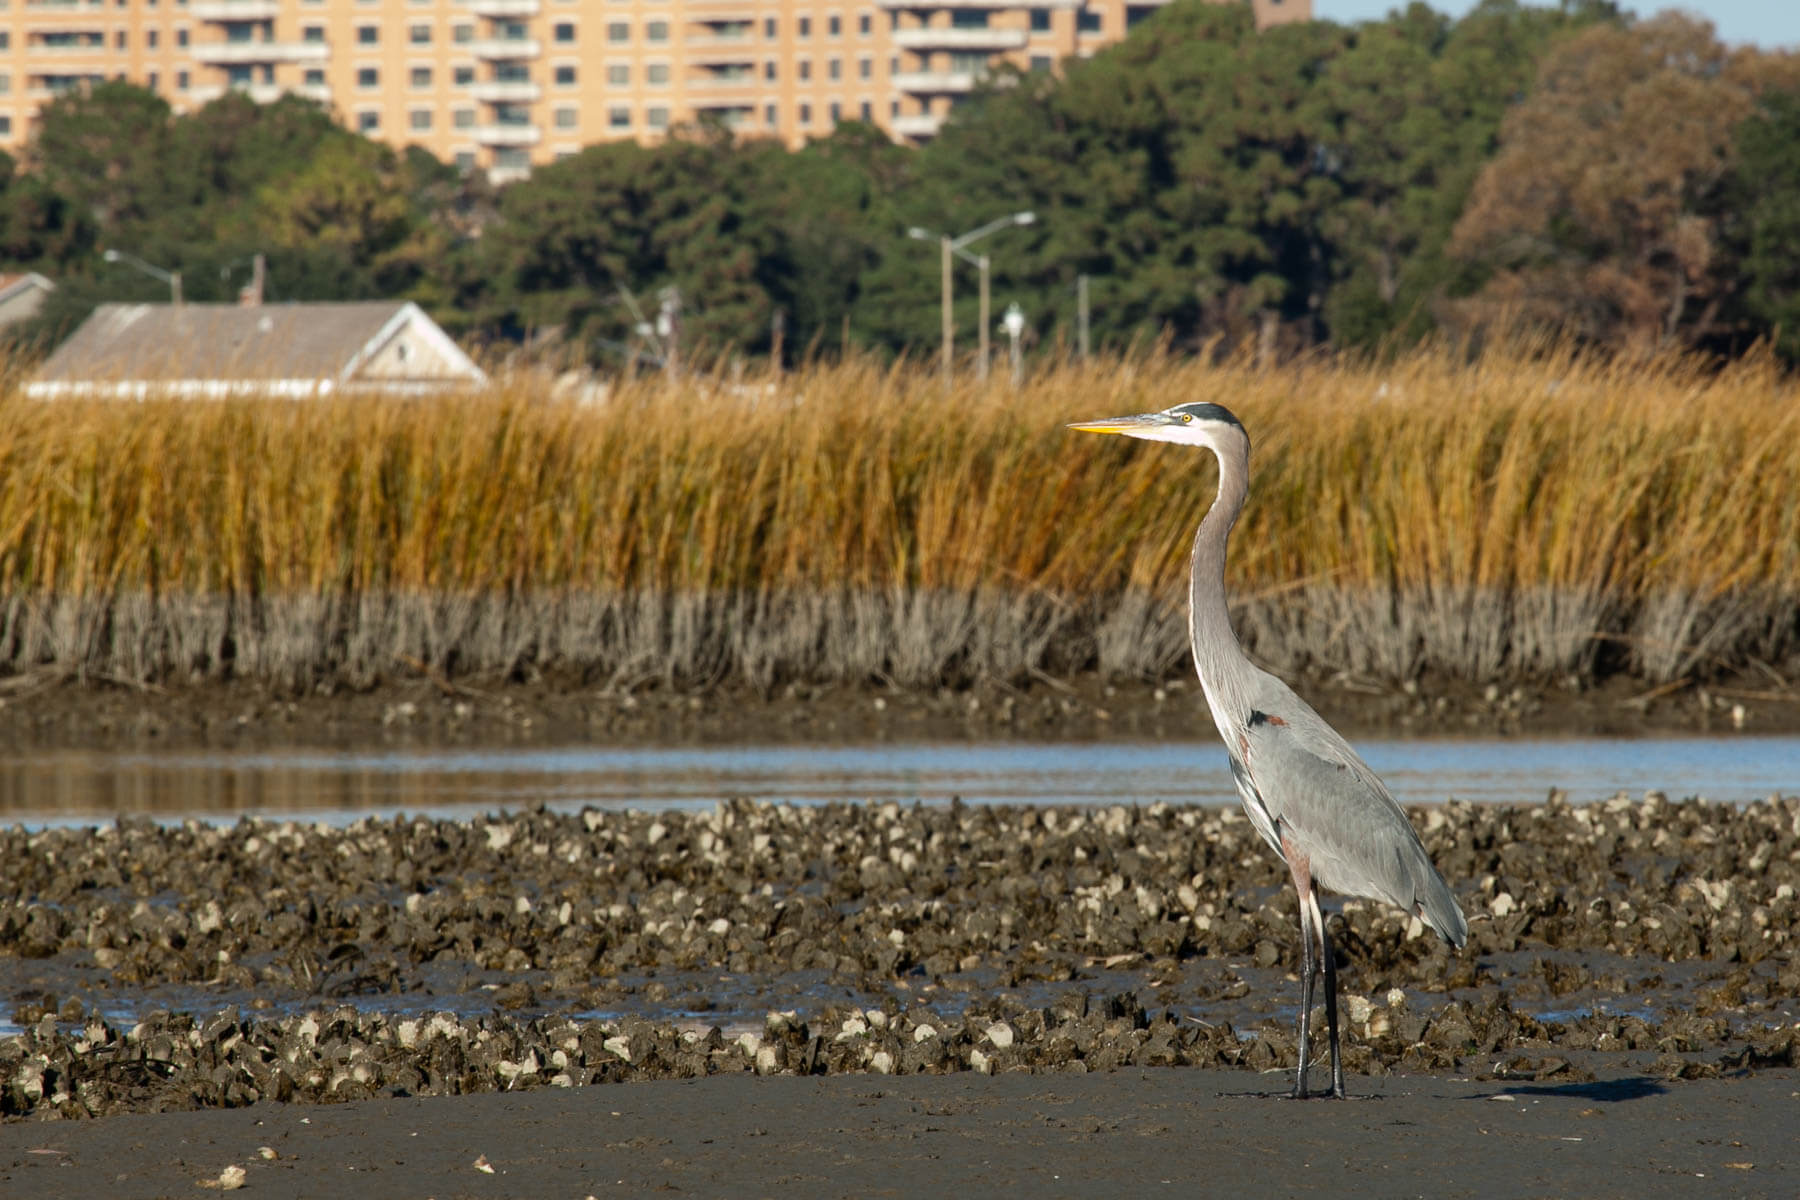 A tall bird (great blue heron) wades through exposed oysters